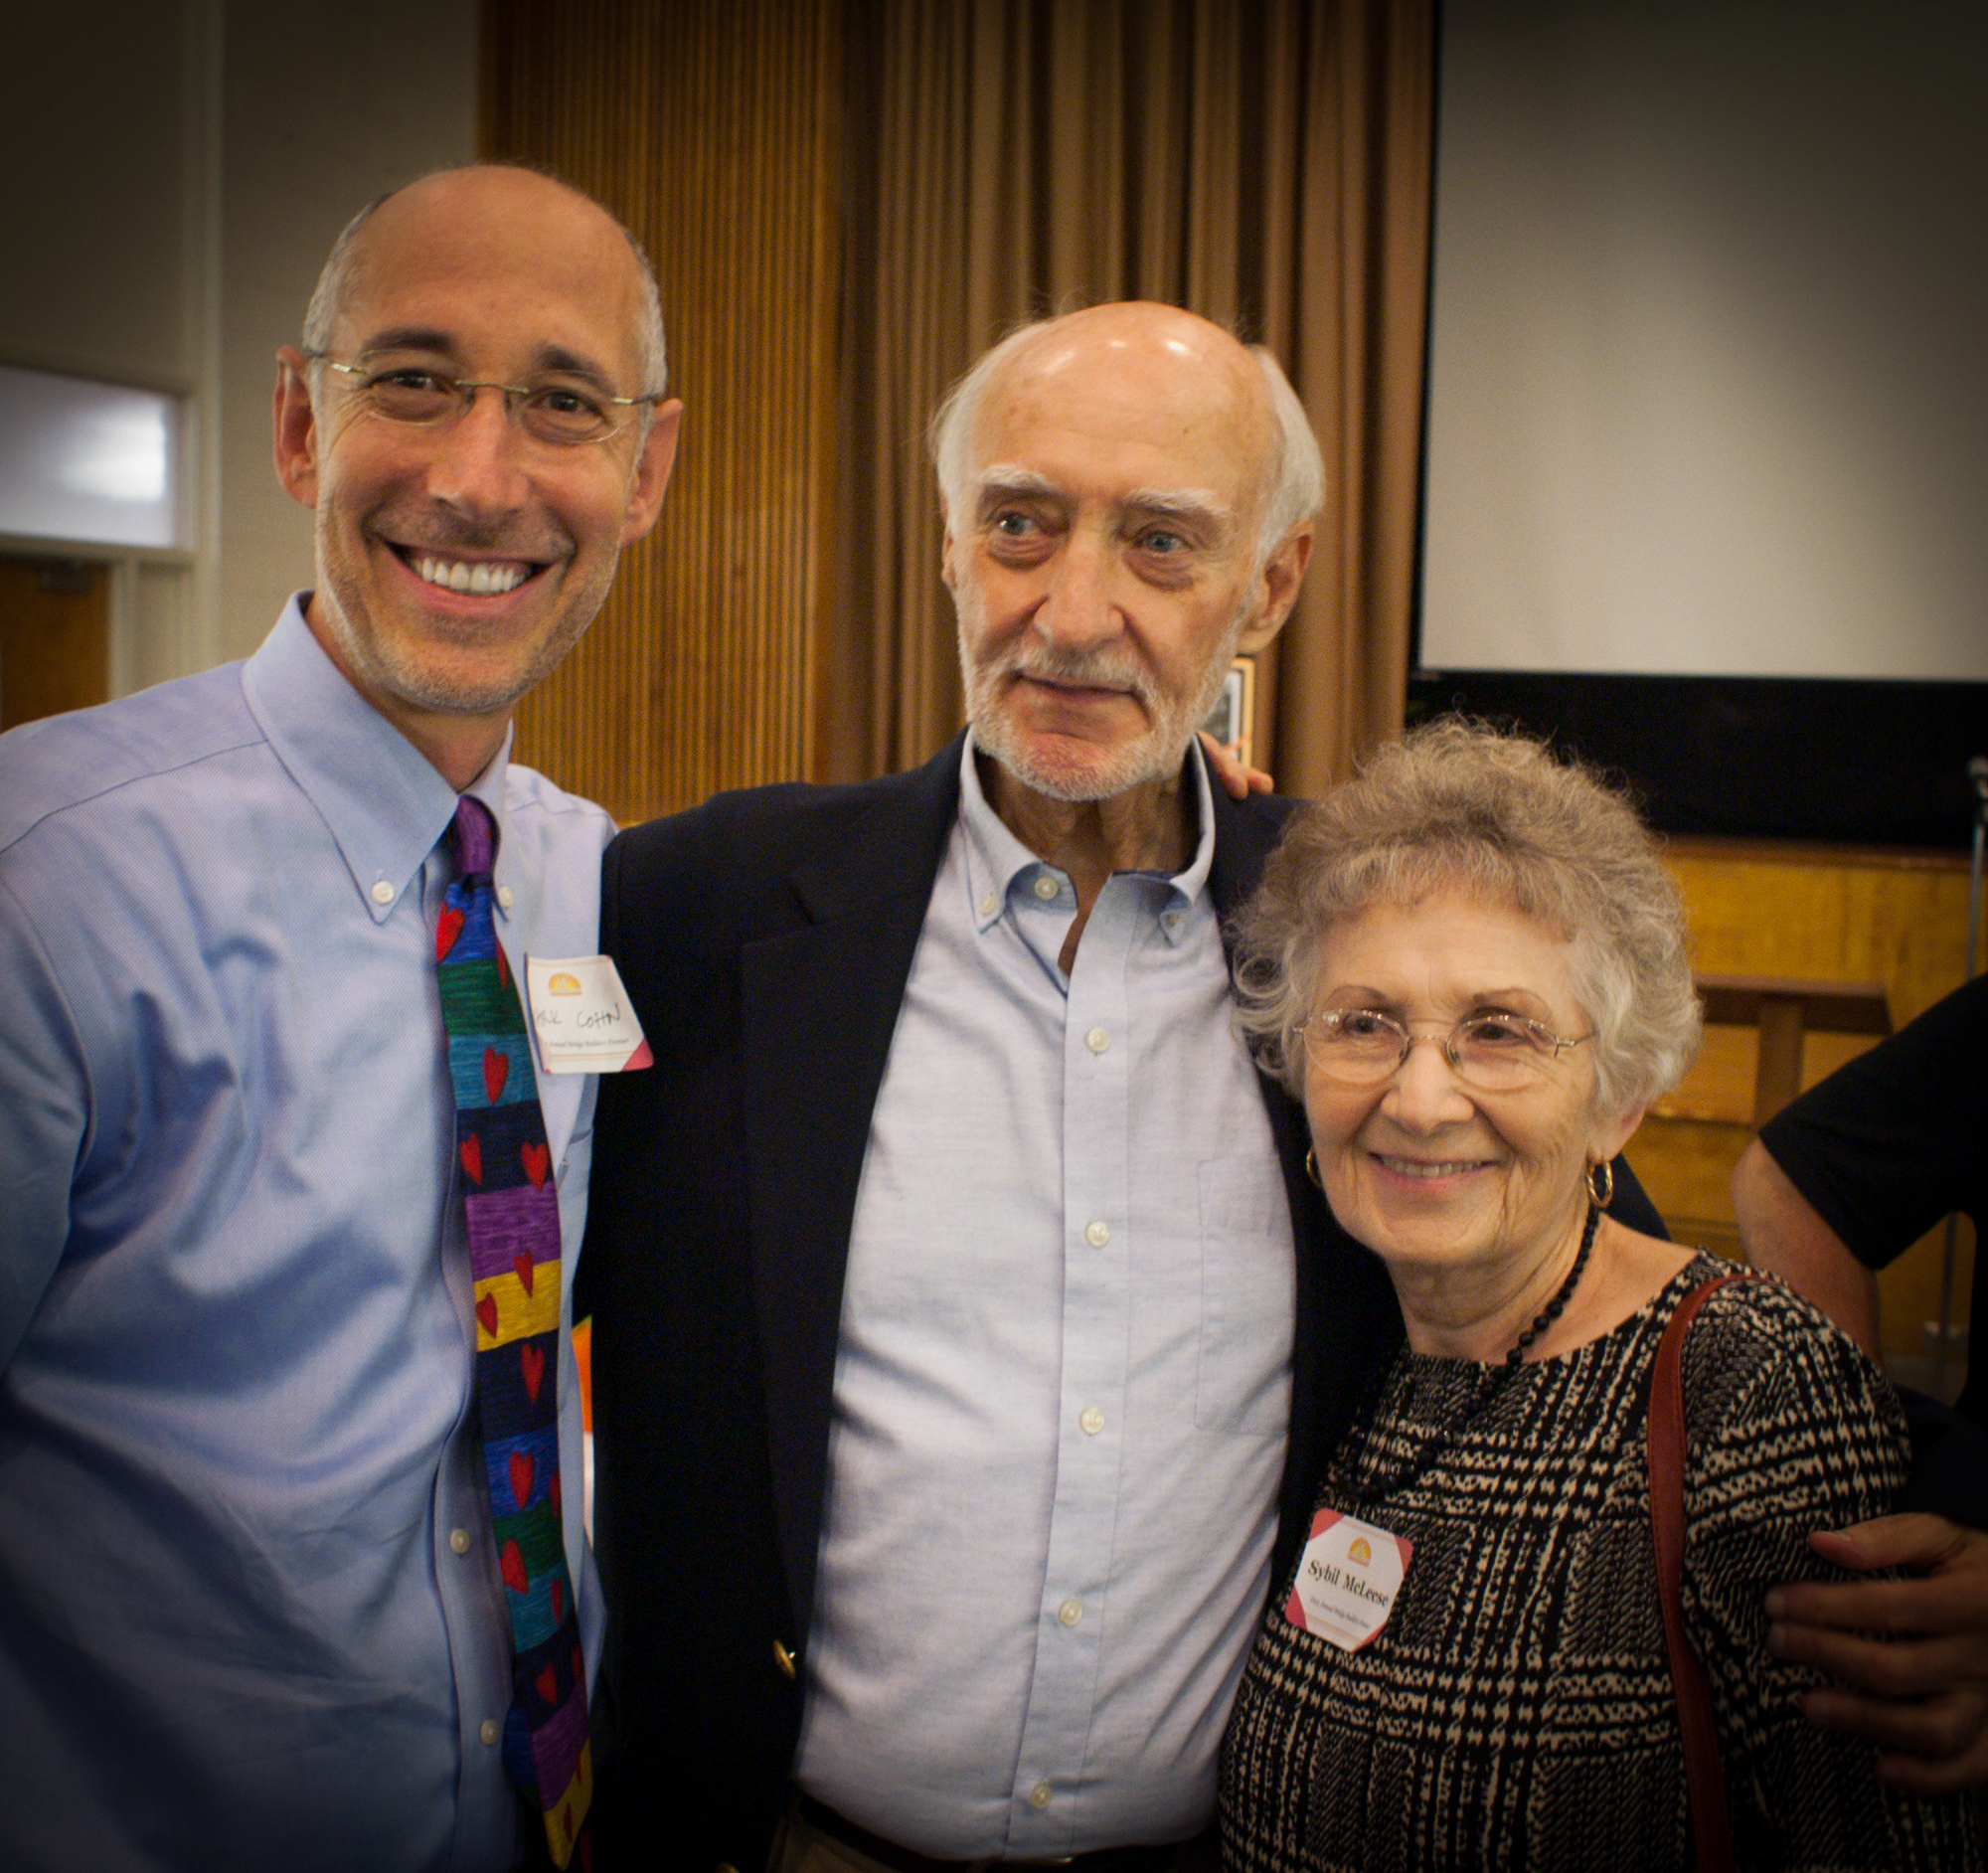 ridge builders - Rabbi mark cohn, jerry, sybil.jpg